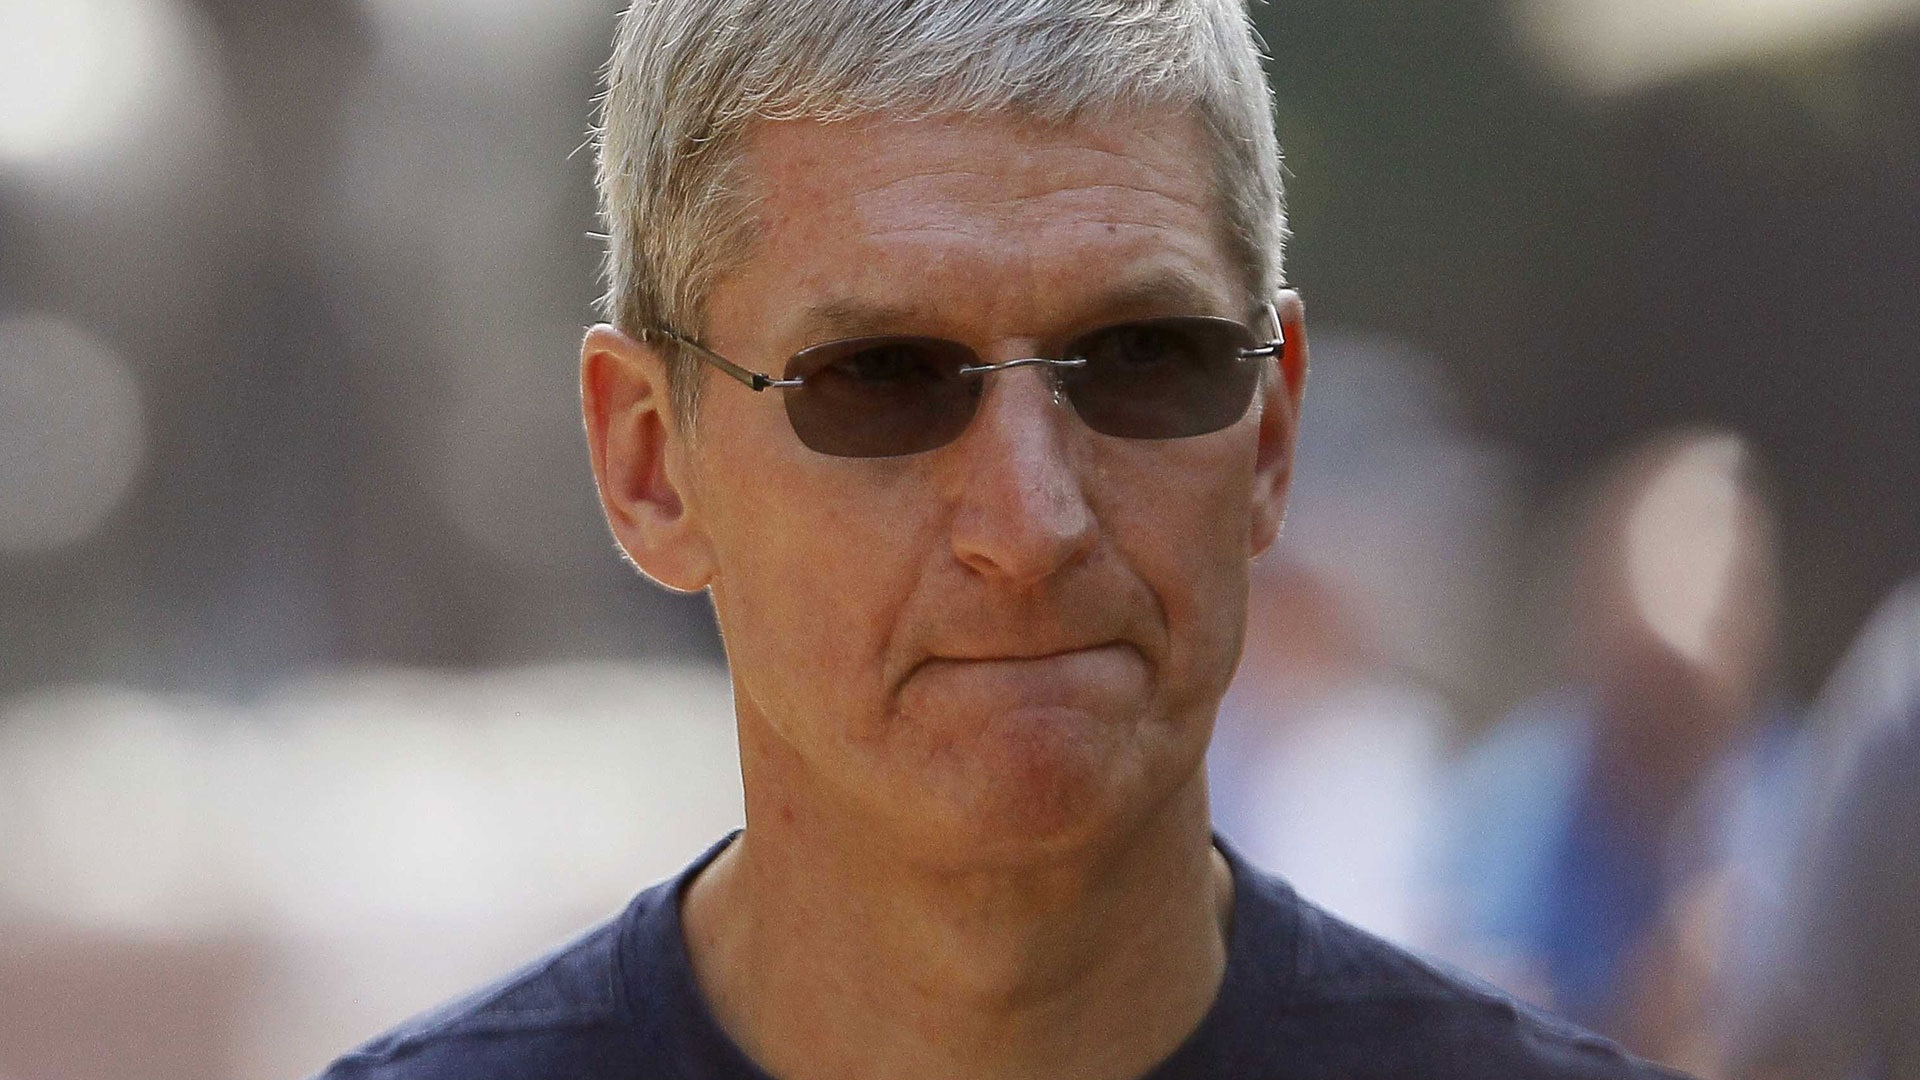 Photo of Tim Cook Demands Removal of Racism Symbols after SC Tragedy